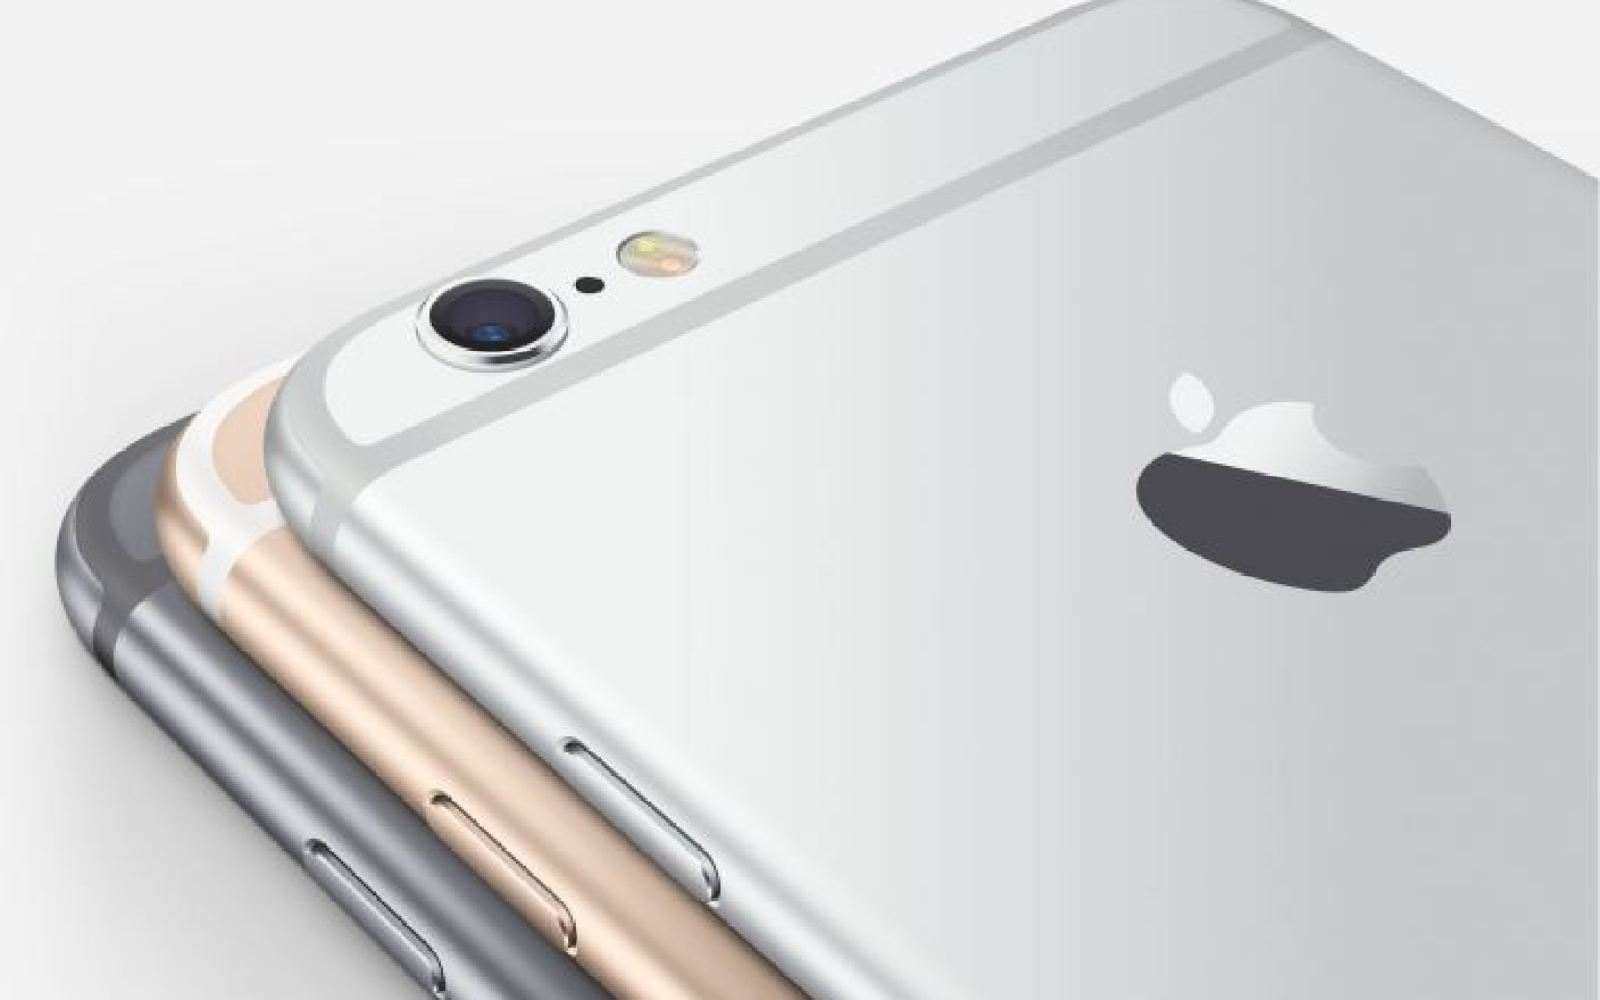 Sketchy Chinese report claims iPhone 6s will drop 16 GB storage option, instead start at 32 GB